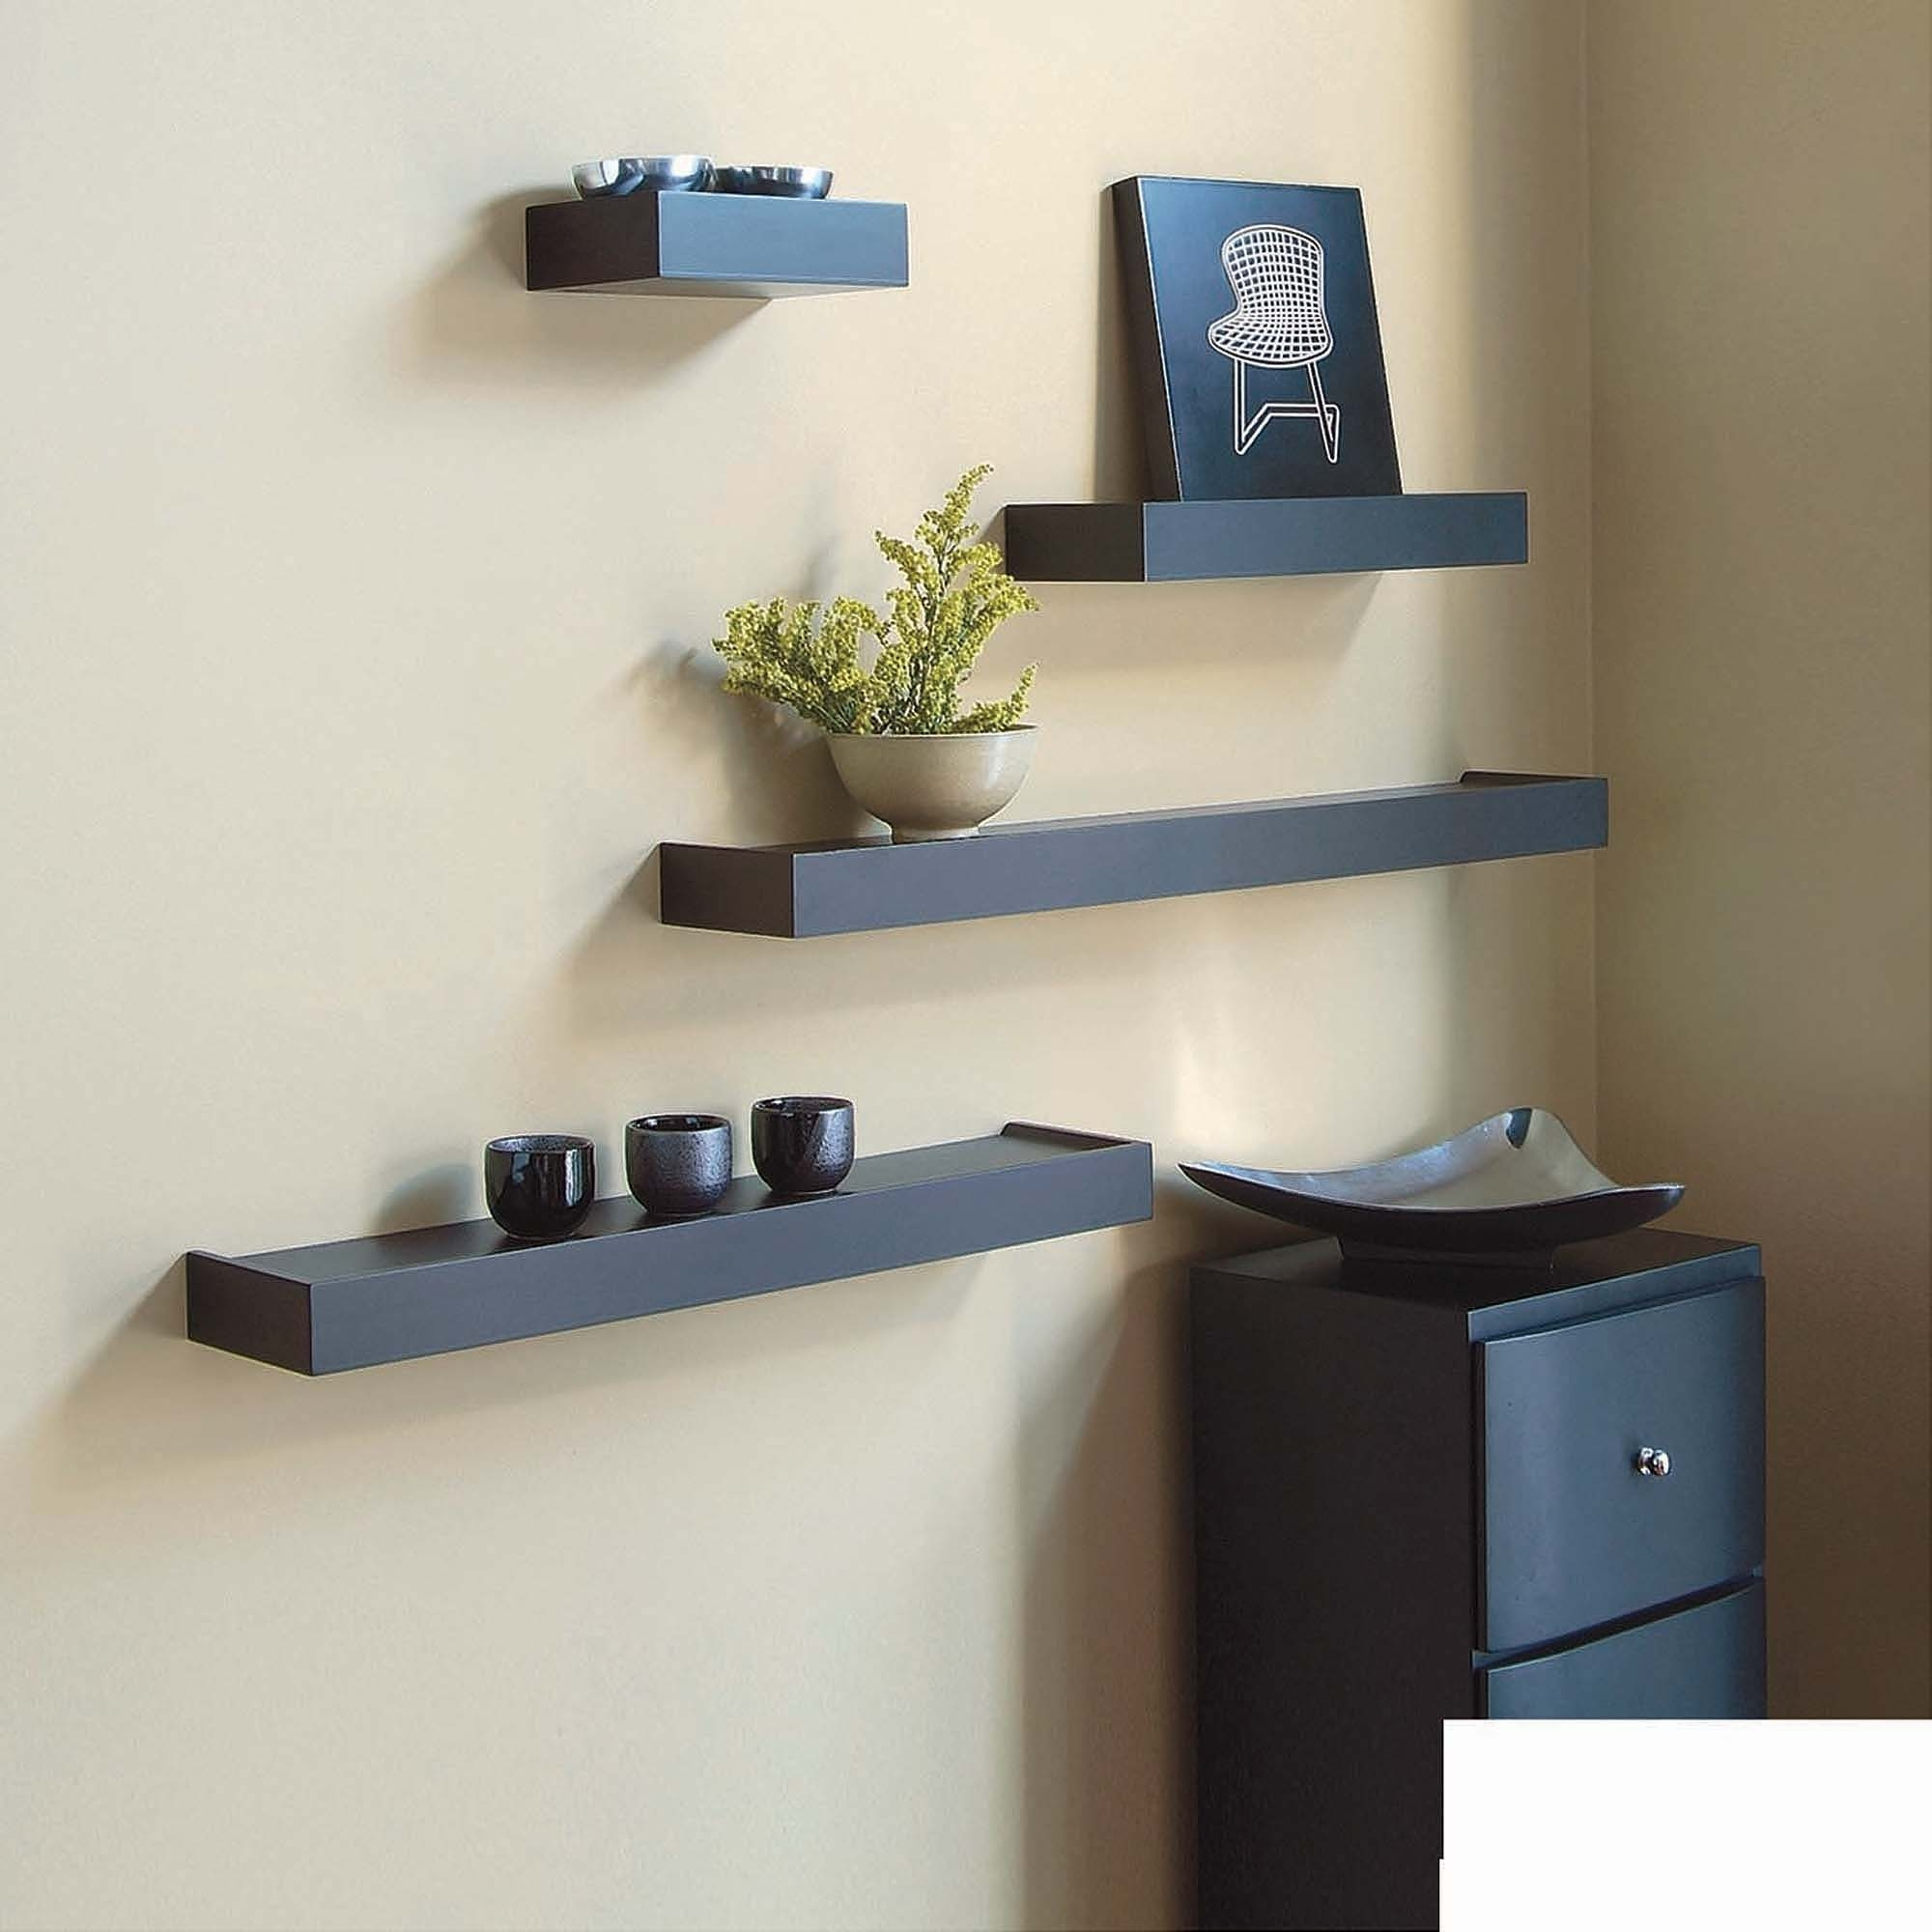 Inplace Shelving 236 Floating Wood Wall Shelf White Walmart Within Floating Wall Shelves (#9 of 12)